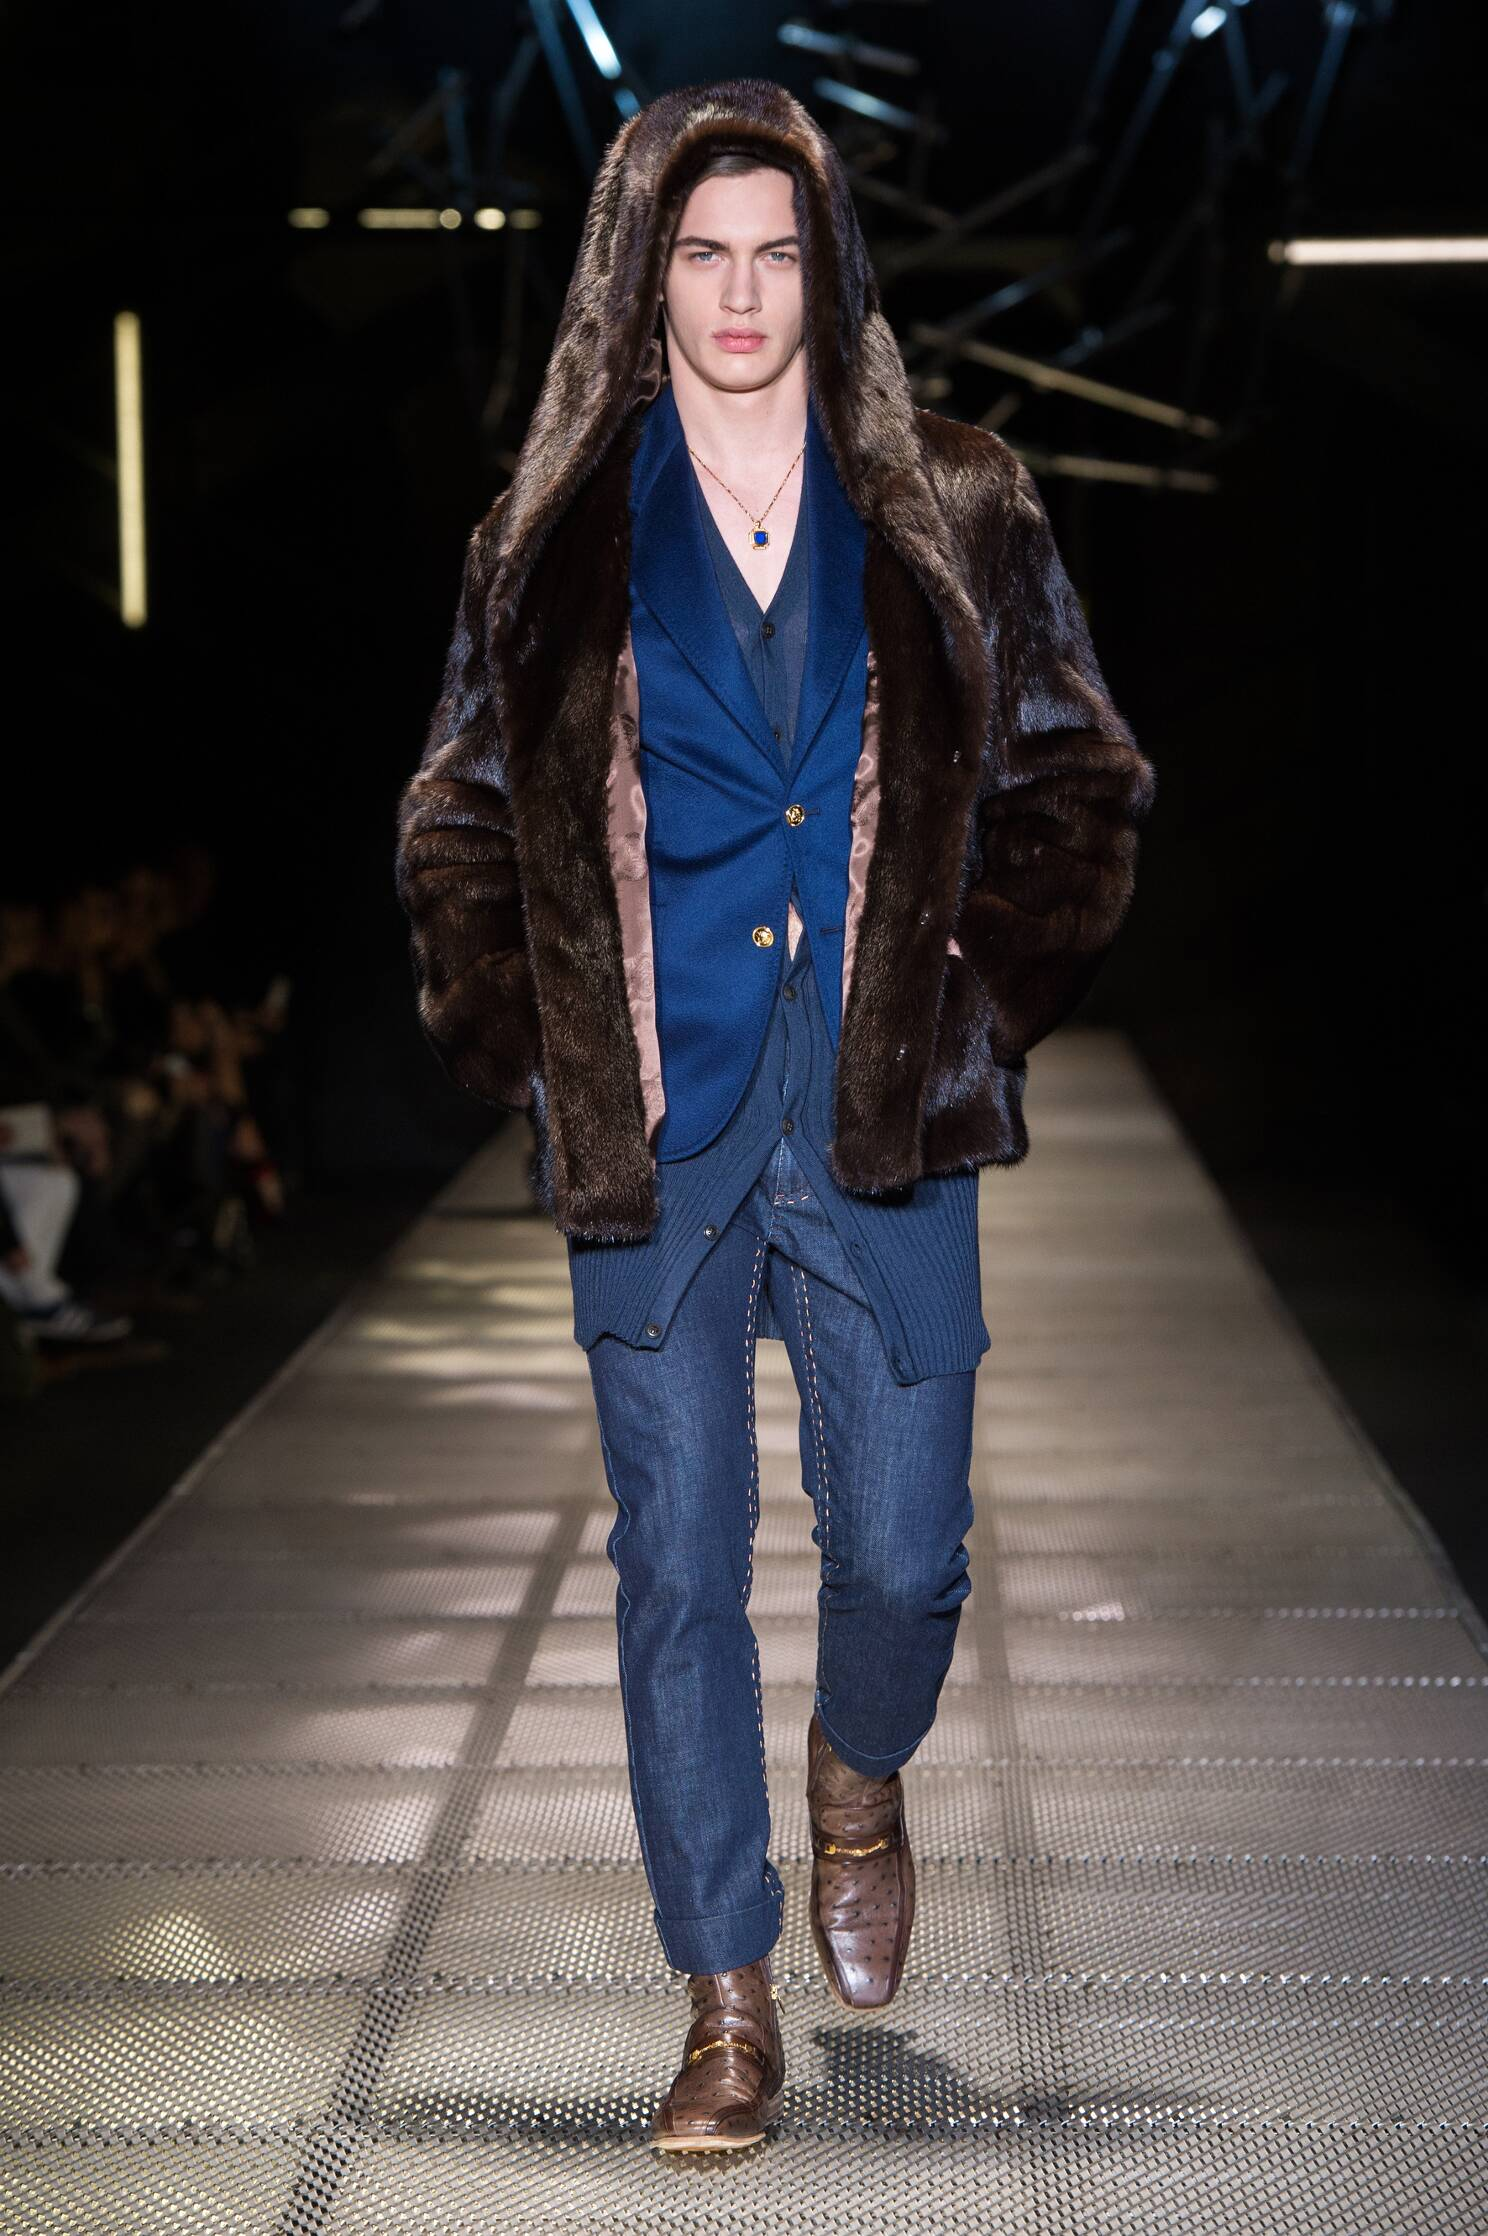 Catwalk Versace Fall Winter 2015 16 Men's Collection Milano Fashion Week